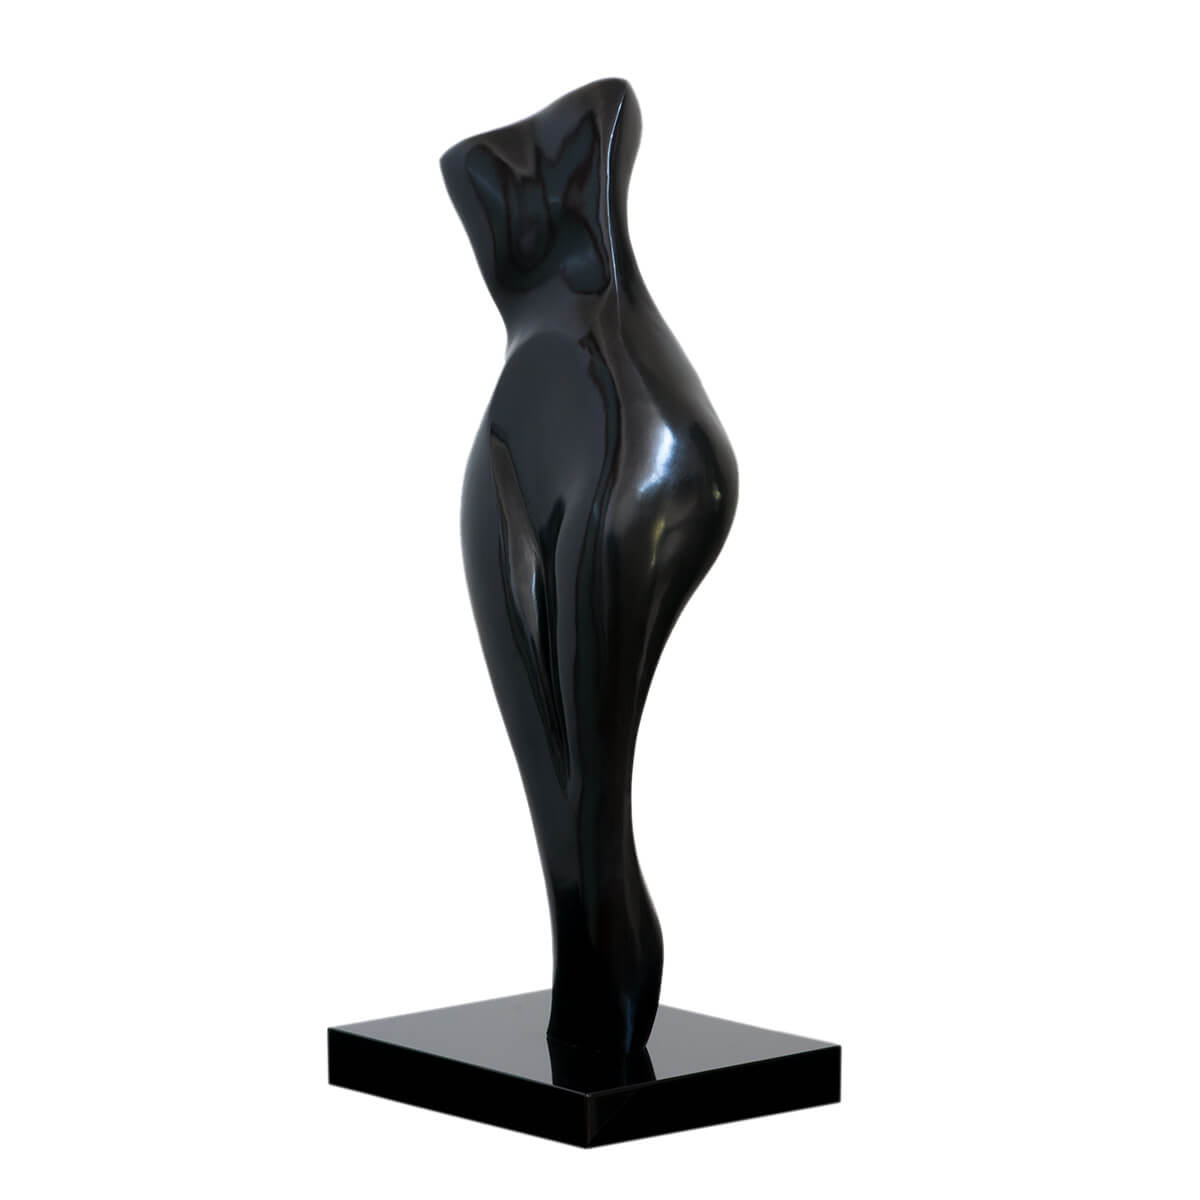 Robert-Helle-Sculpture-Gallery-Grace-2-c-1200x1200